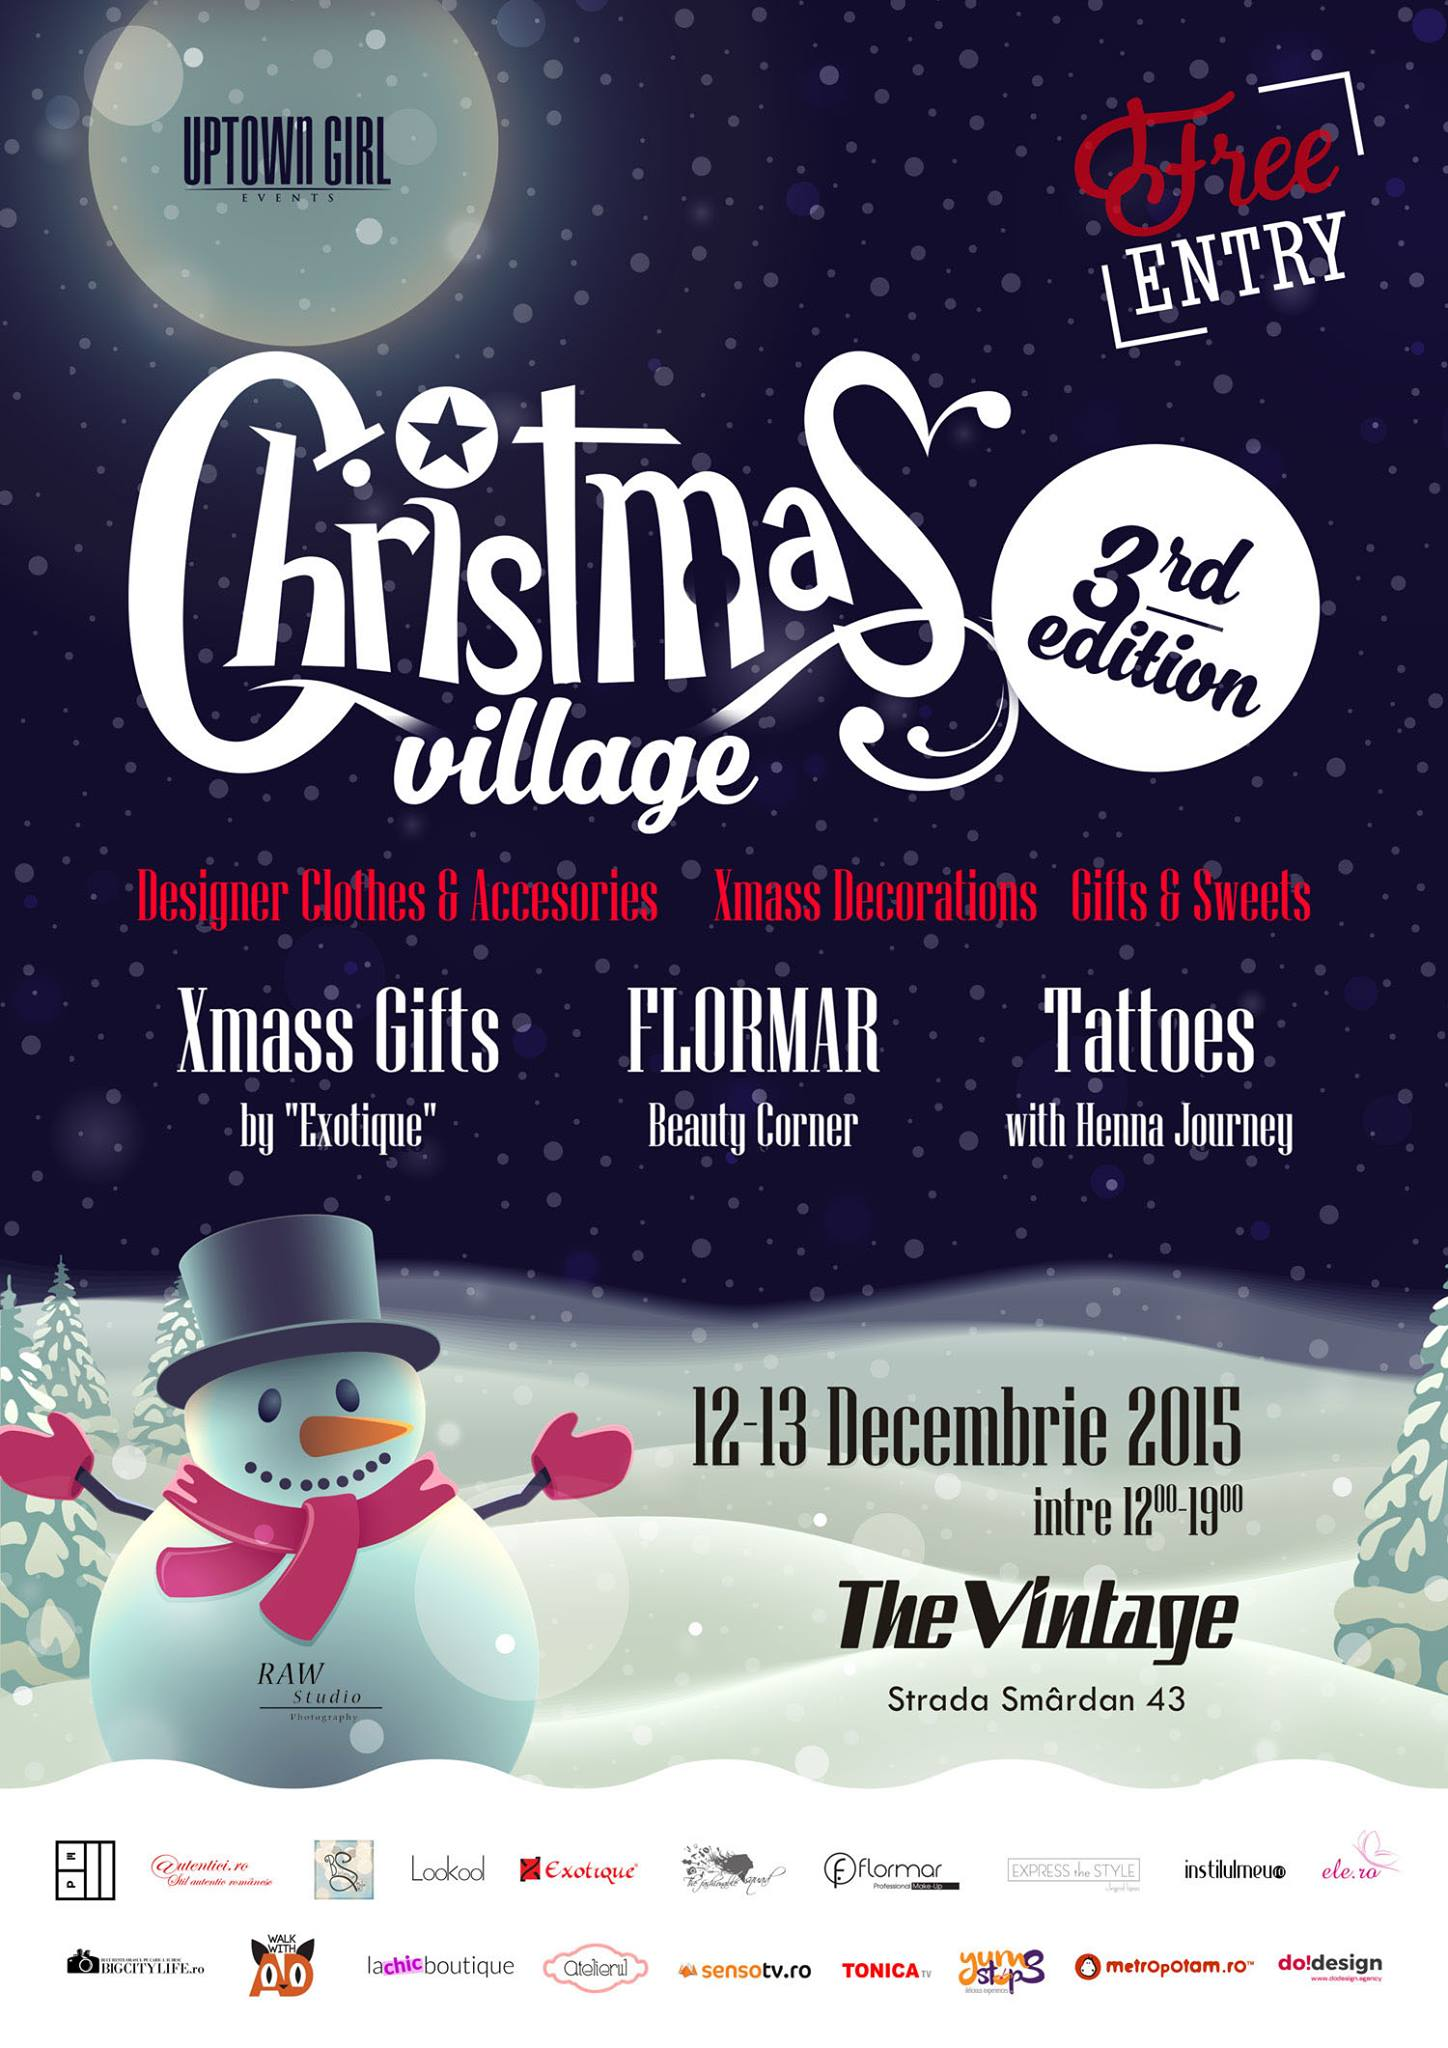 Uptown Girl revine cu a 3-a editie de Christmas Village